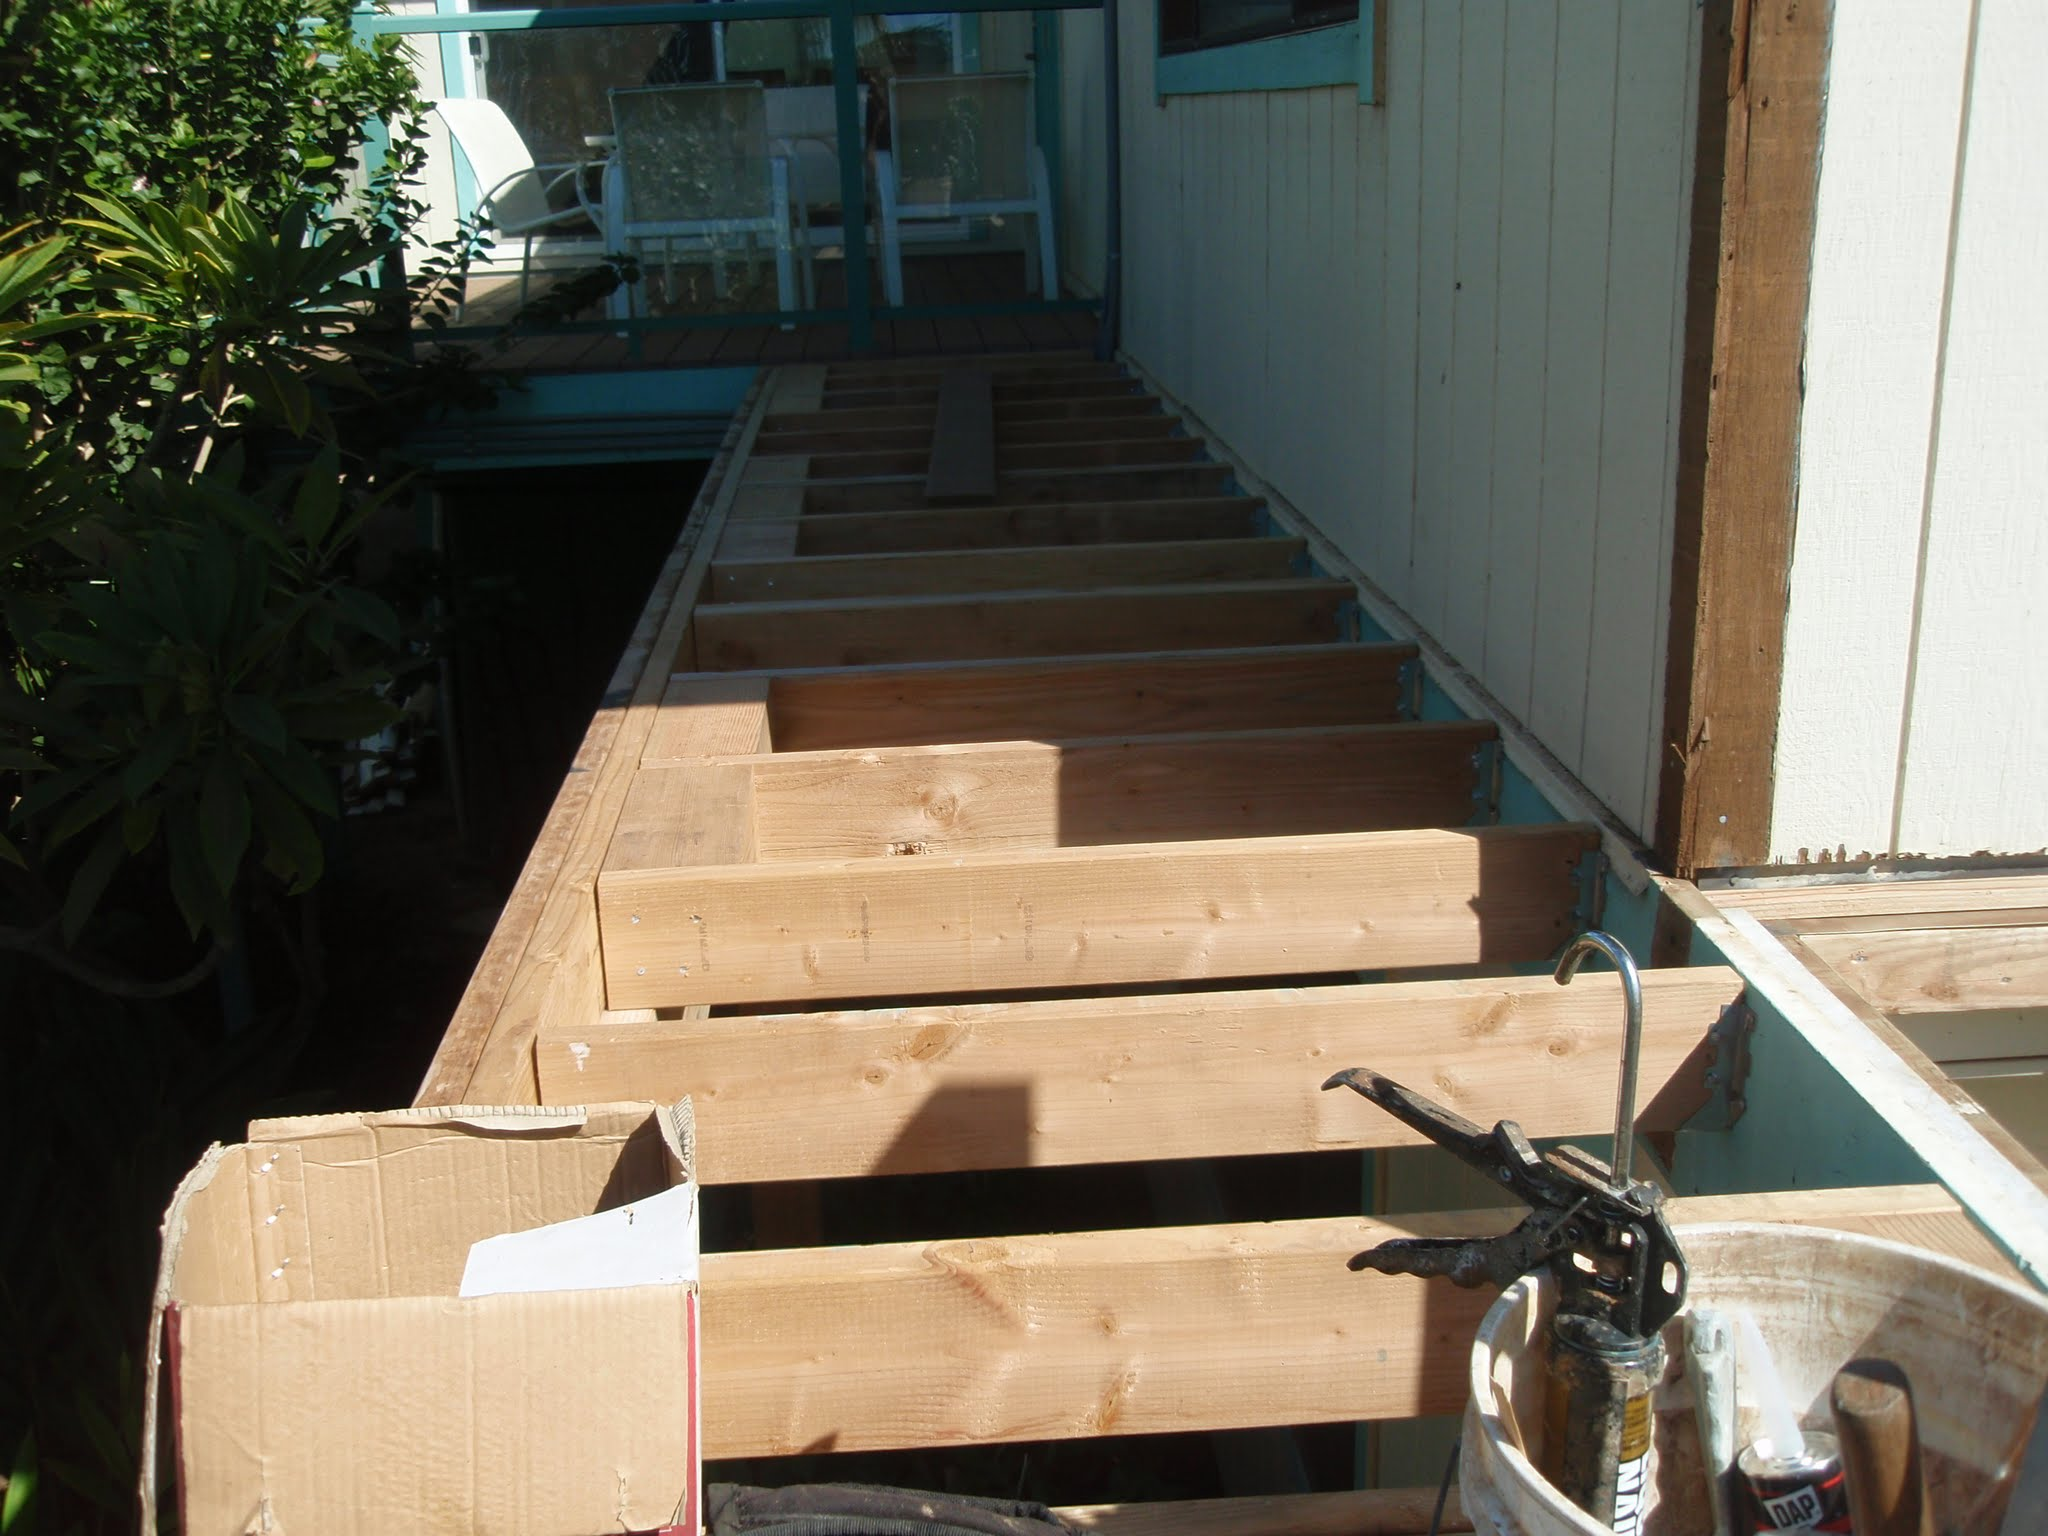 This bridge will have Trex 1 x 6 planks for its finish to match the existing front decking